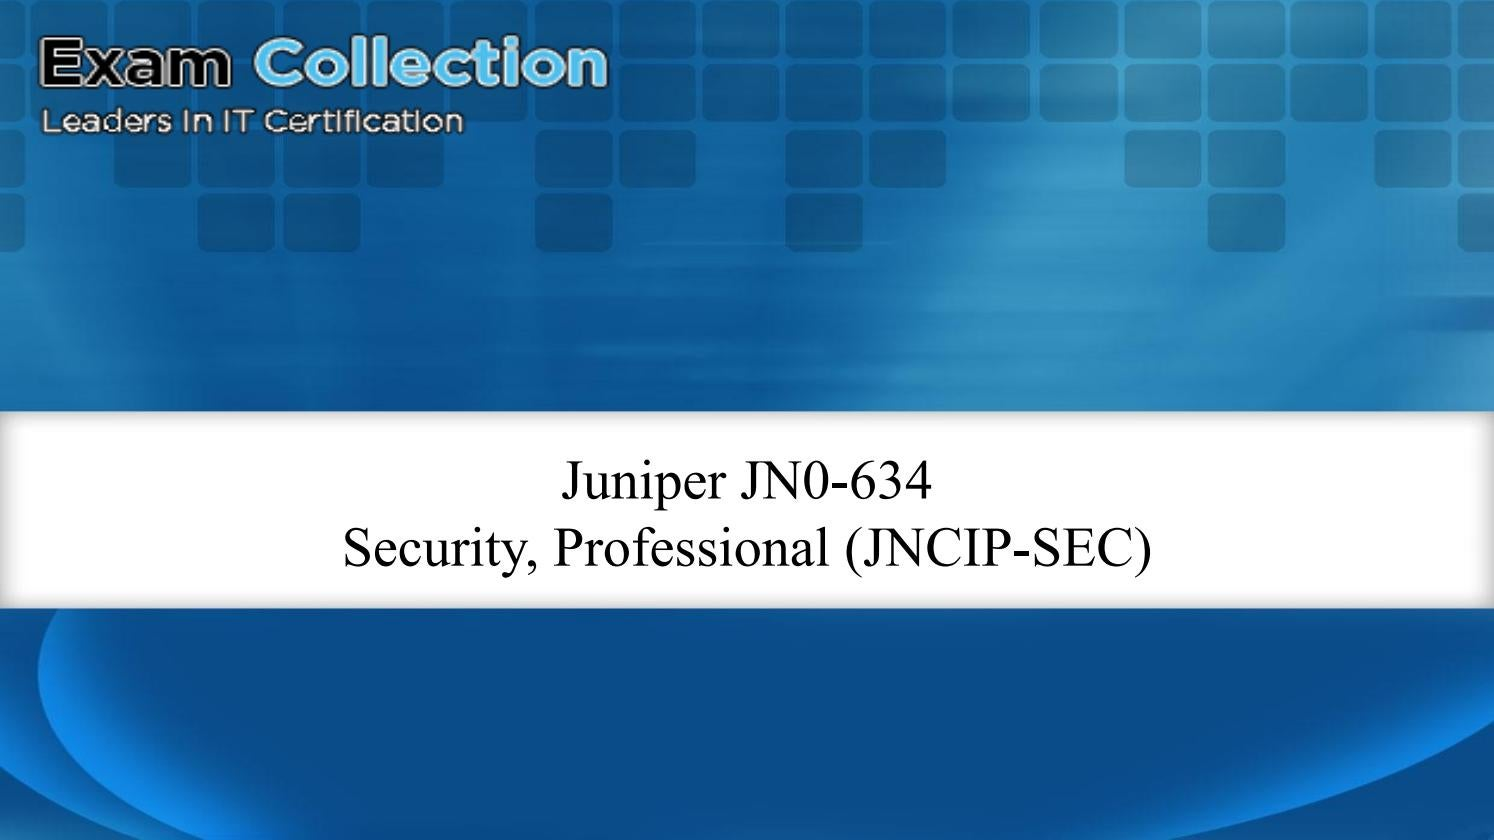 Examcollection 2017 Juniper JN0-634 Dumps | JN0-634 VCE - Free Try